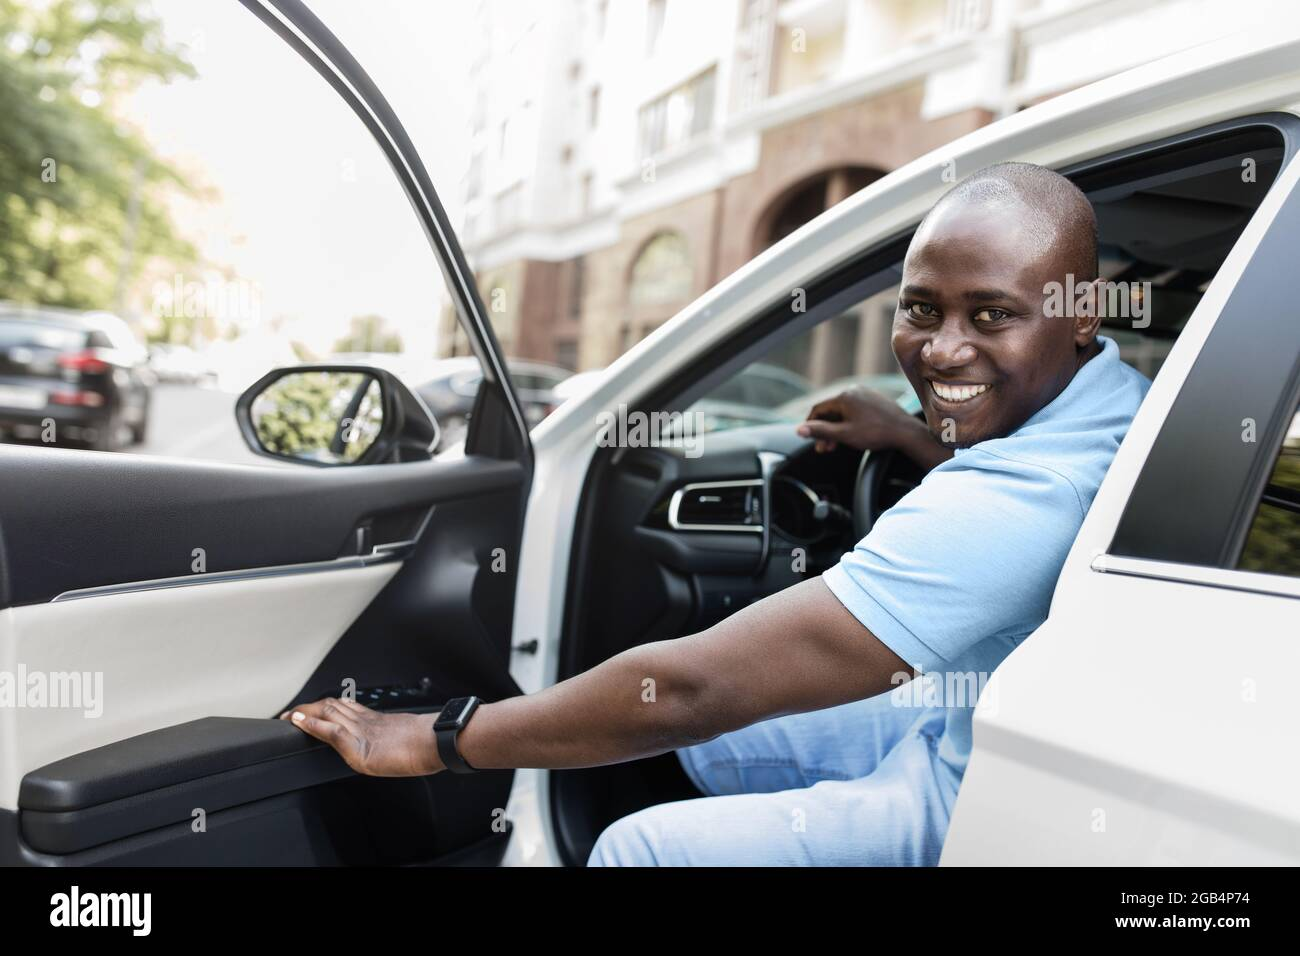 Cheerful black guy getting into nice automobile Stock Photo